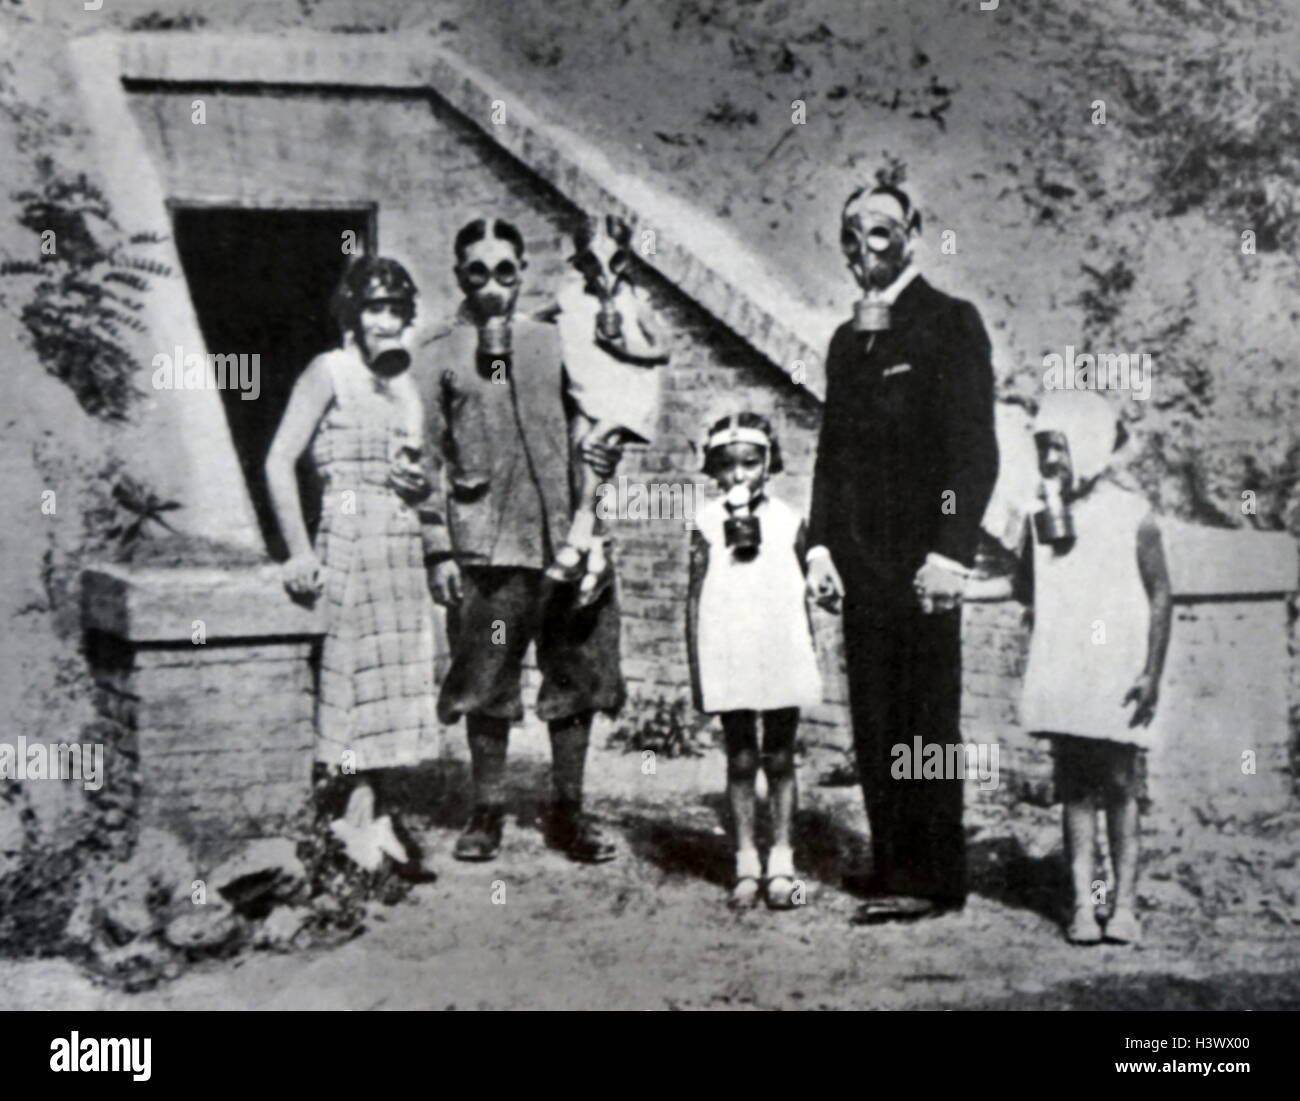 Photograph of Italian family wearing gas masks  Dated 20th Century